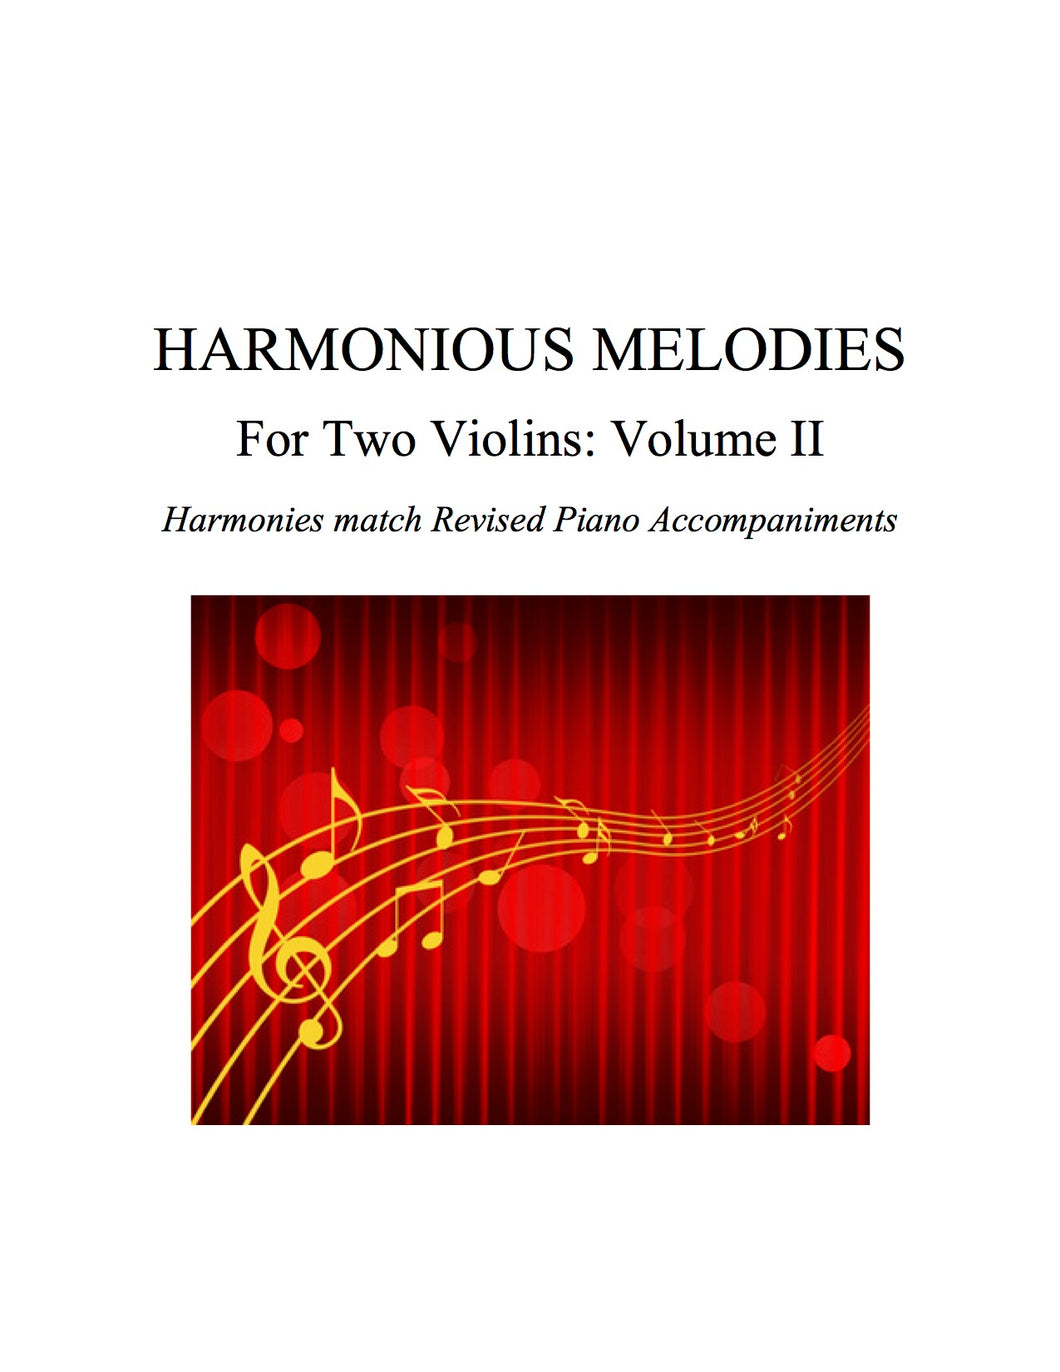 006 - Harmonious Melodies For Two Violins, Volume II (Suzuki 5-8 shorter pieces)